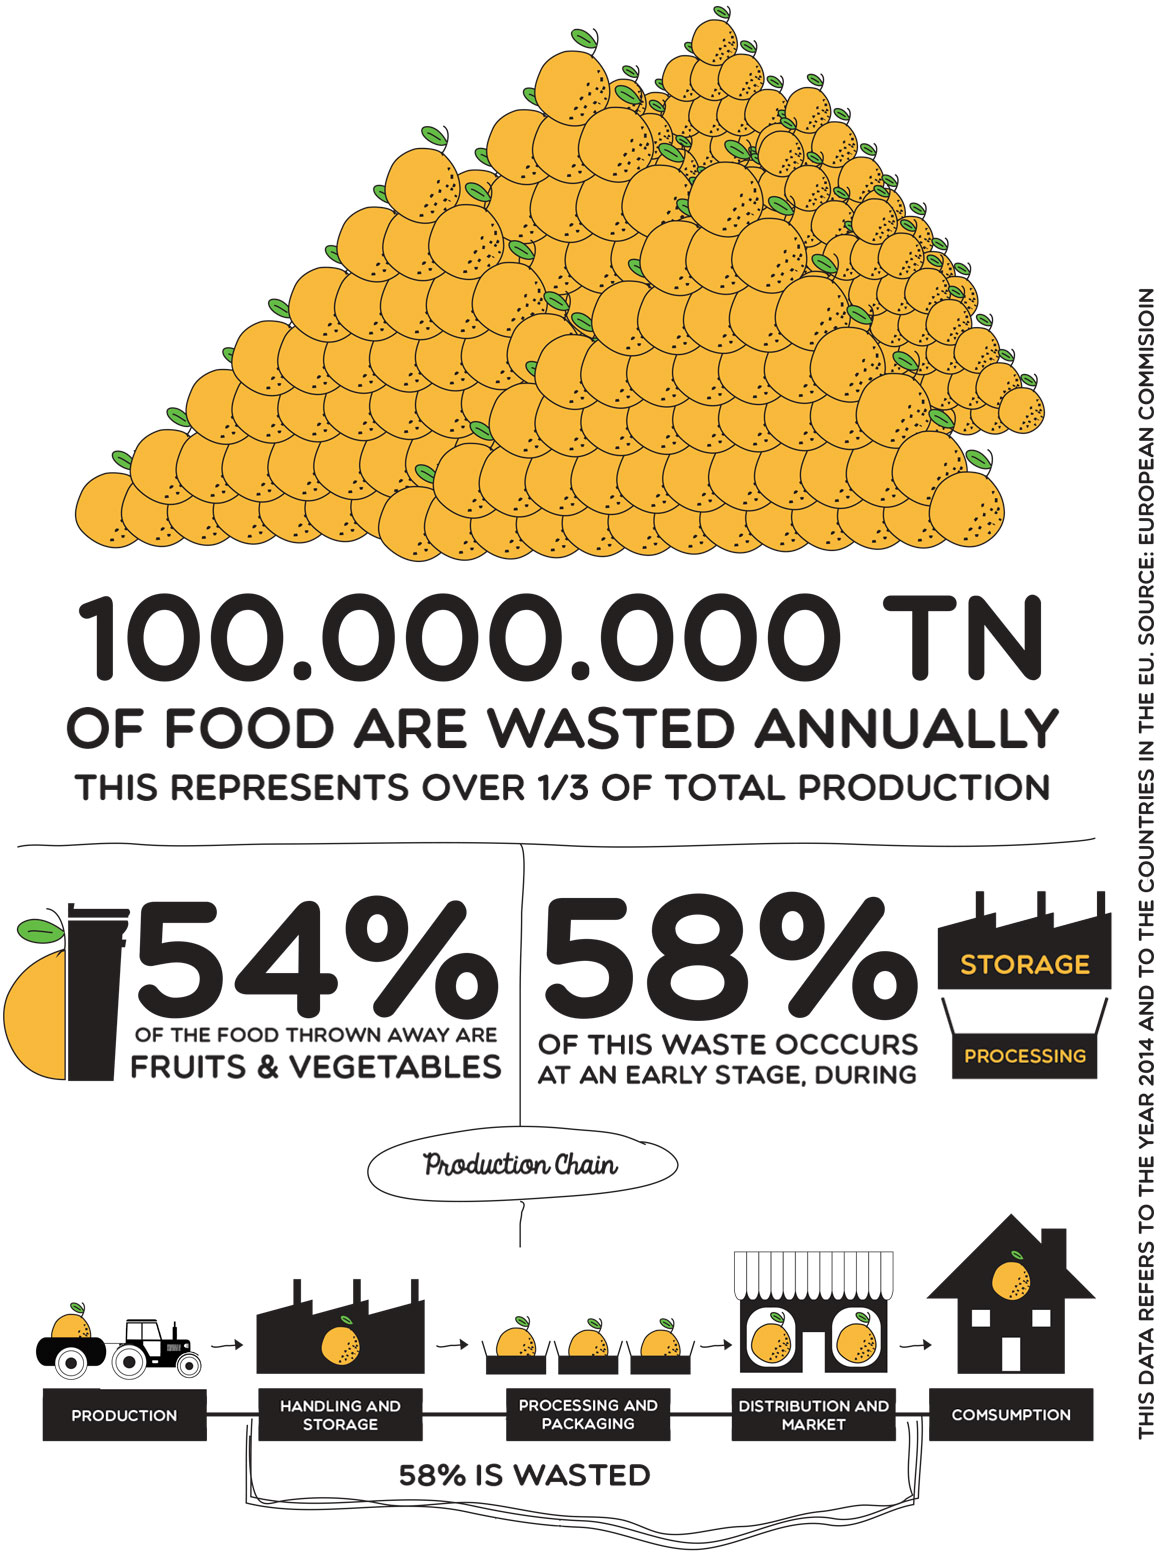 100.000.000 TN of food are wasted annually this represents over 1/3 of total production, 54% of the food thrown away are fruits & vegetables, 58% of this waste occurs at an early stage during storage and processing.